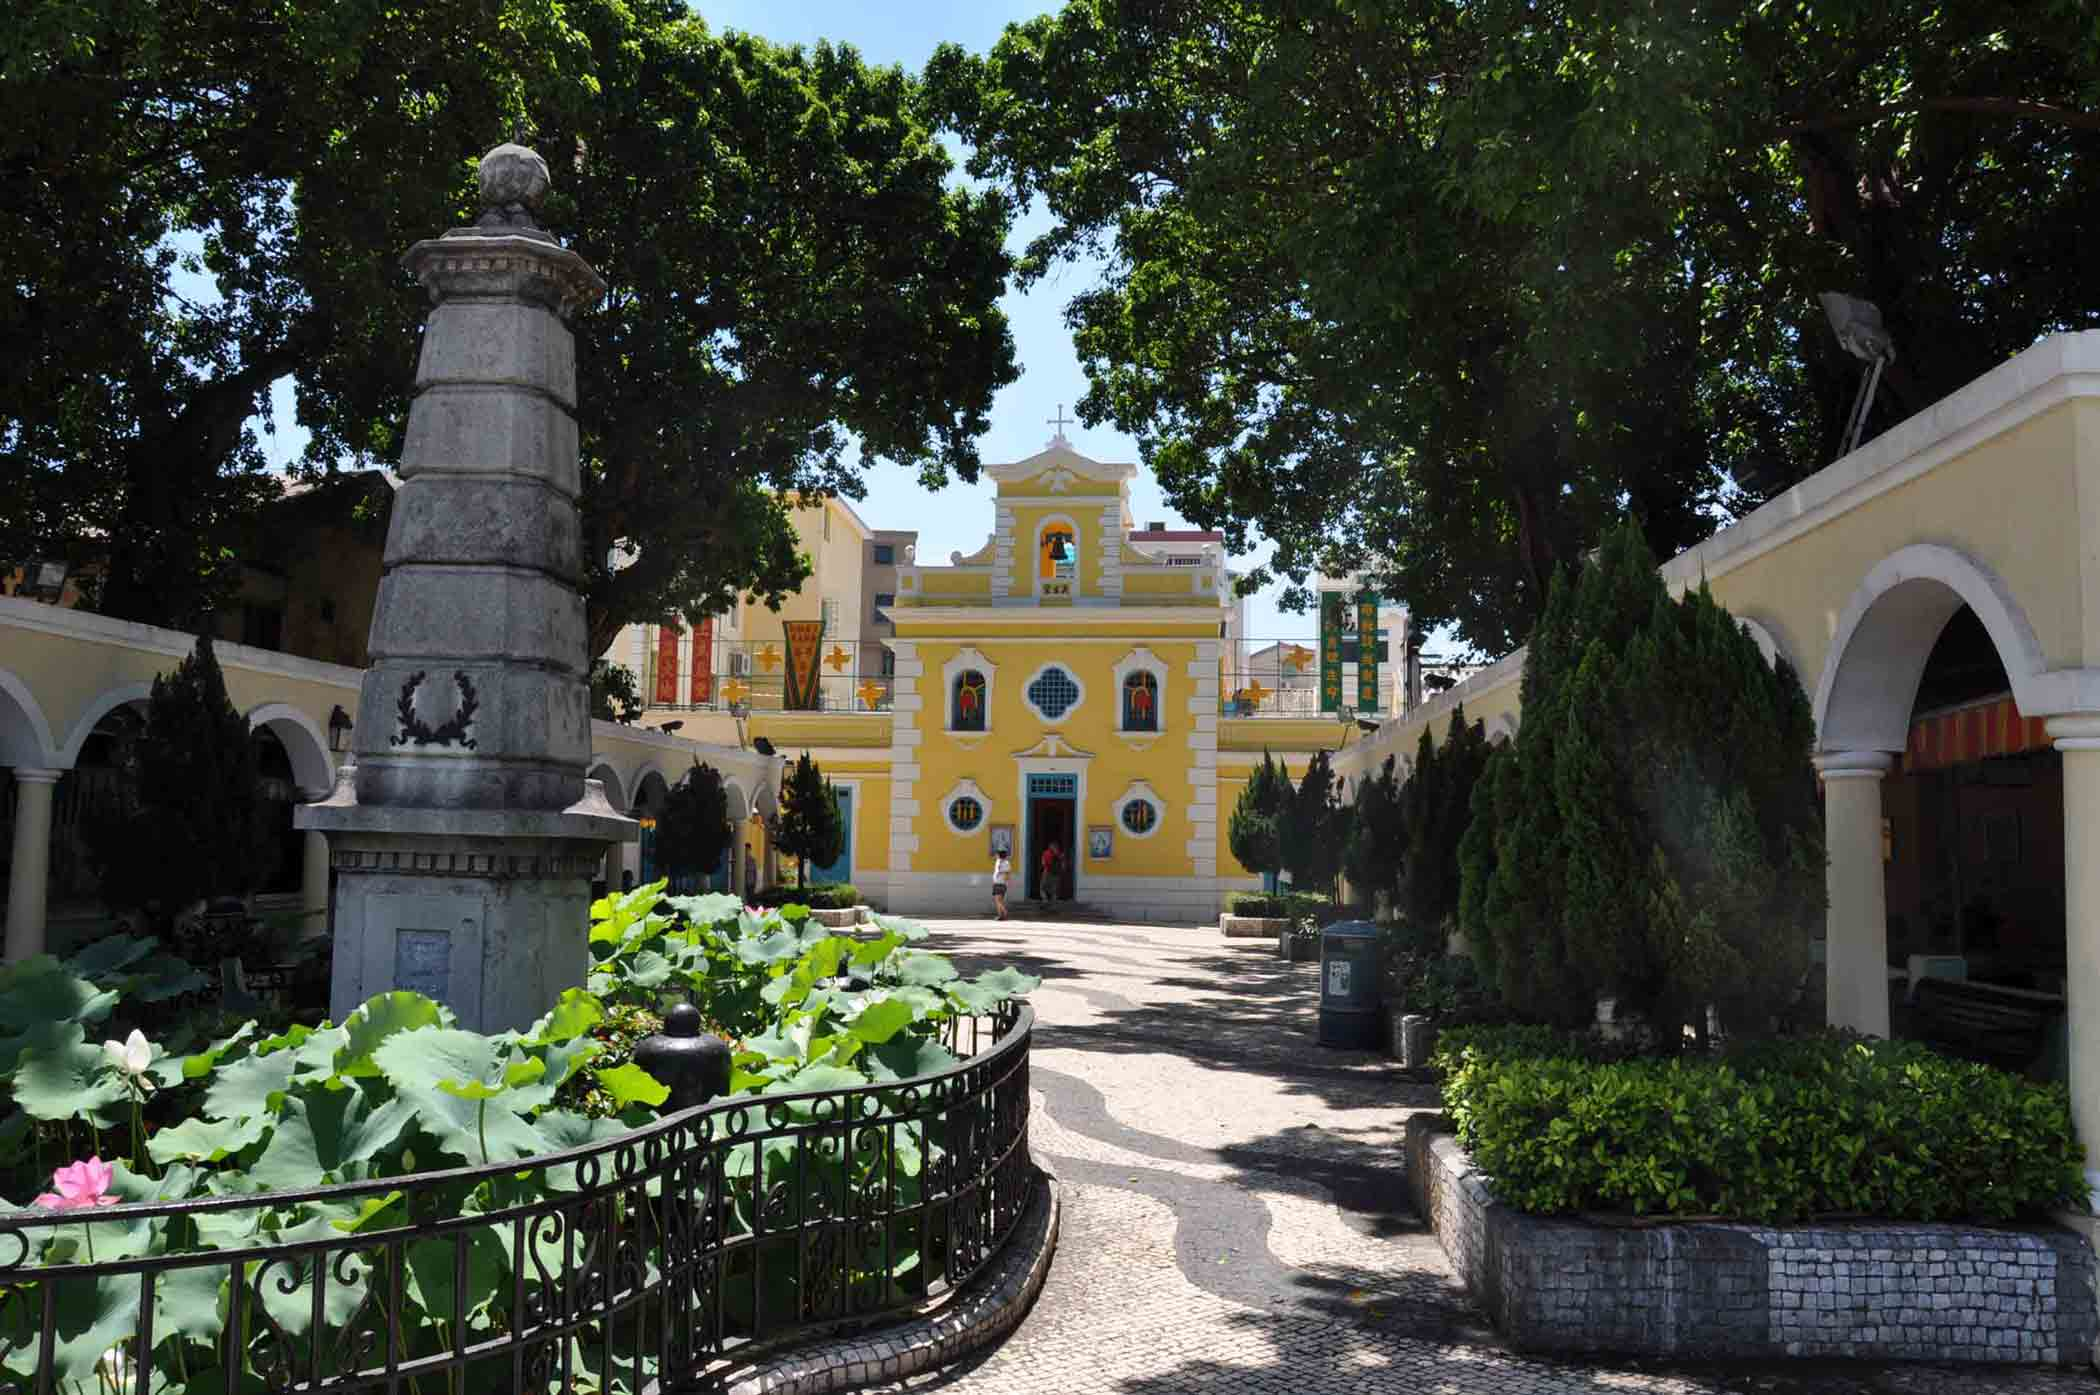 Coloane churches: Chapel of St. Francis of Xavier